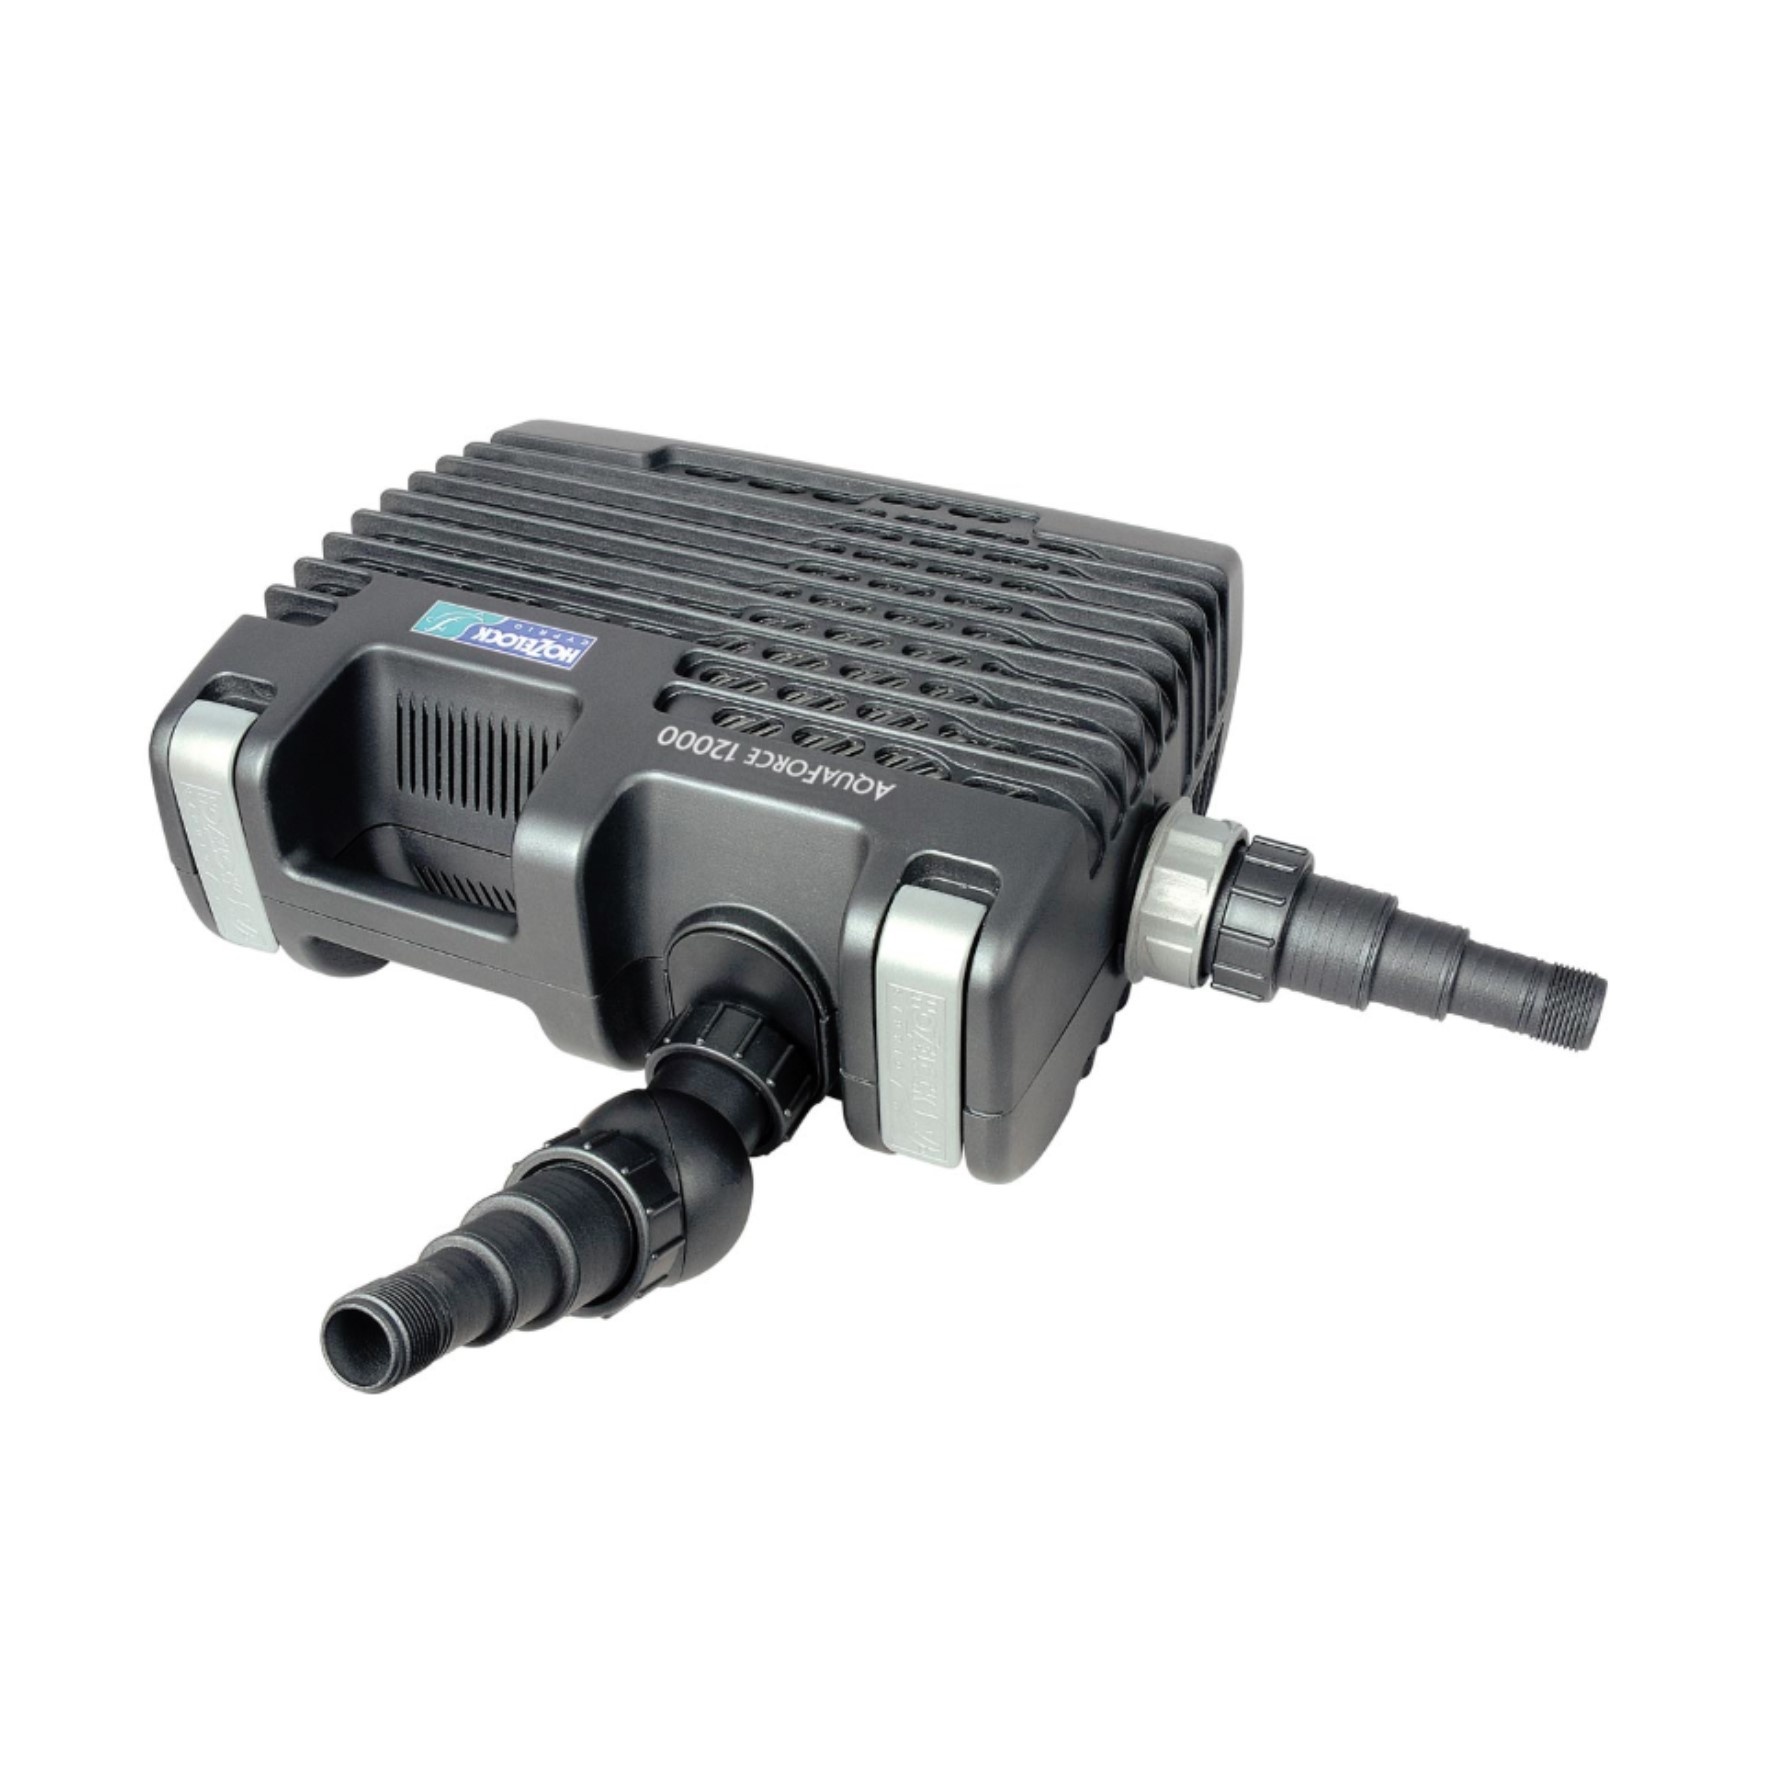 Aqua Force Pond Pump